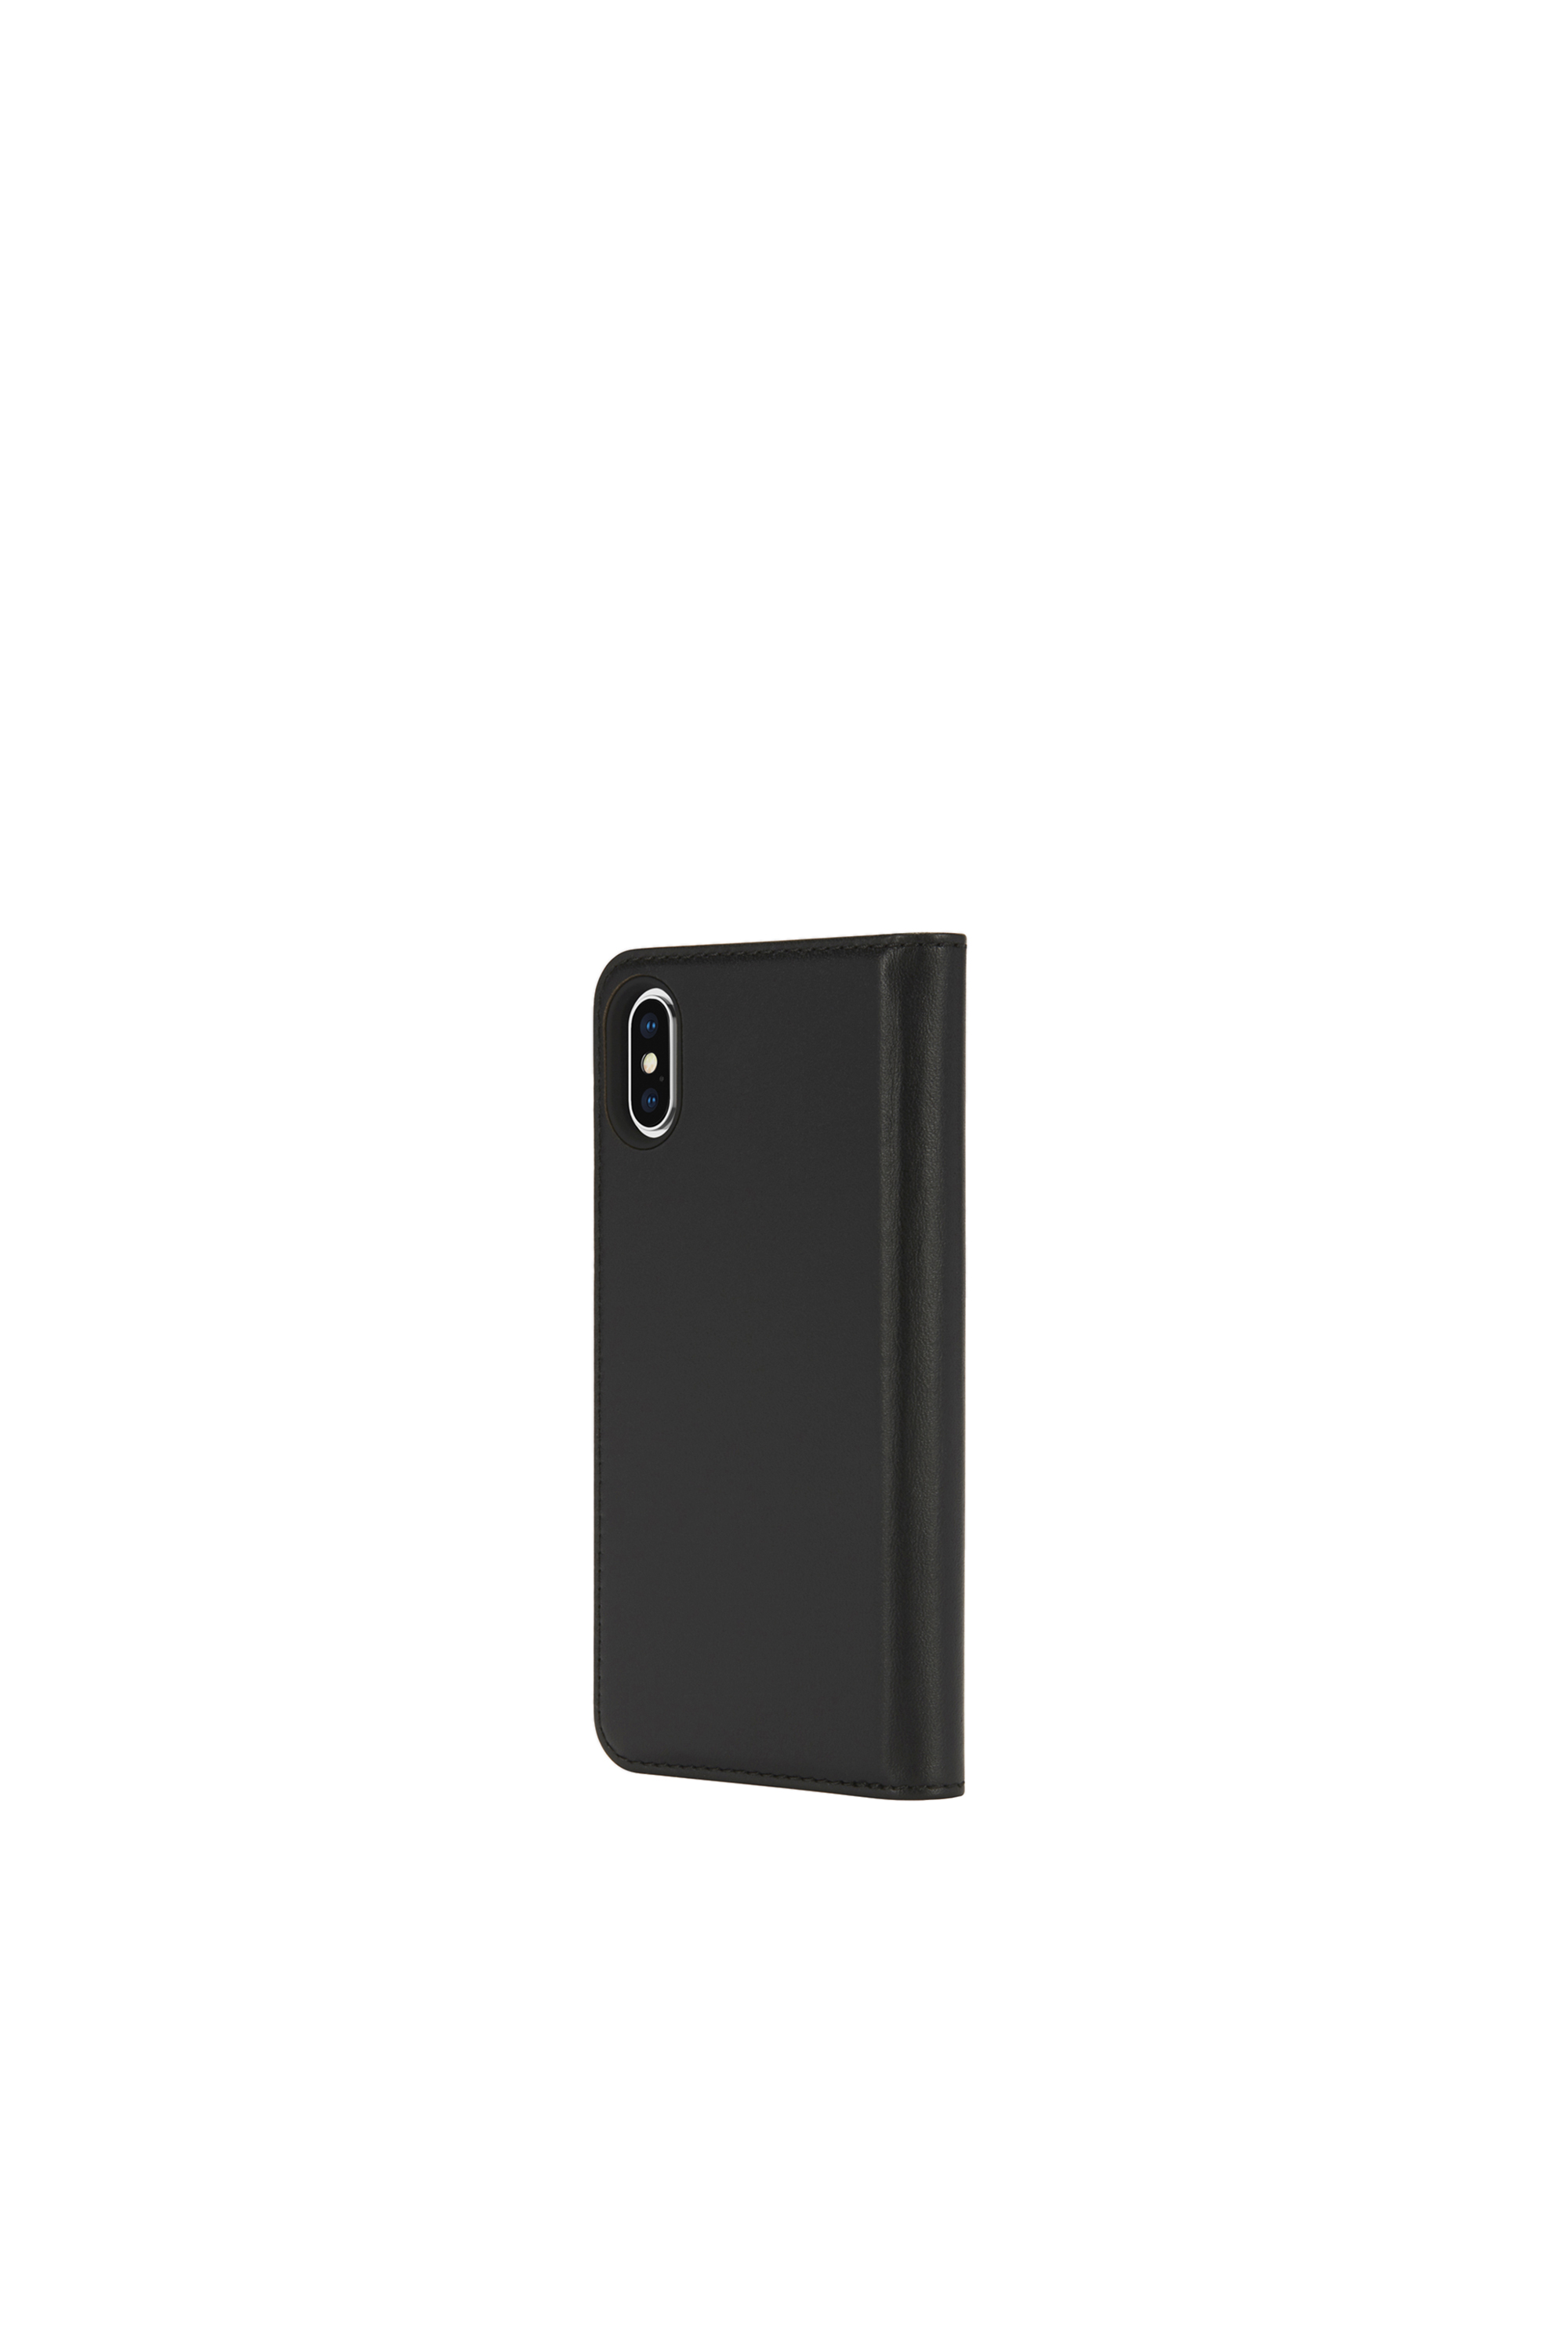 Diesel - SLIM LEATHER FOLIO IPHONE X,  - Flip covers - Image 5